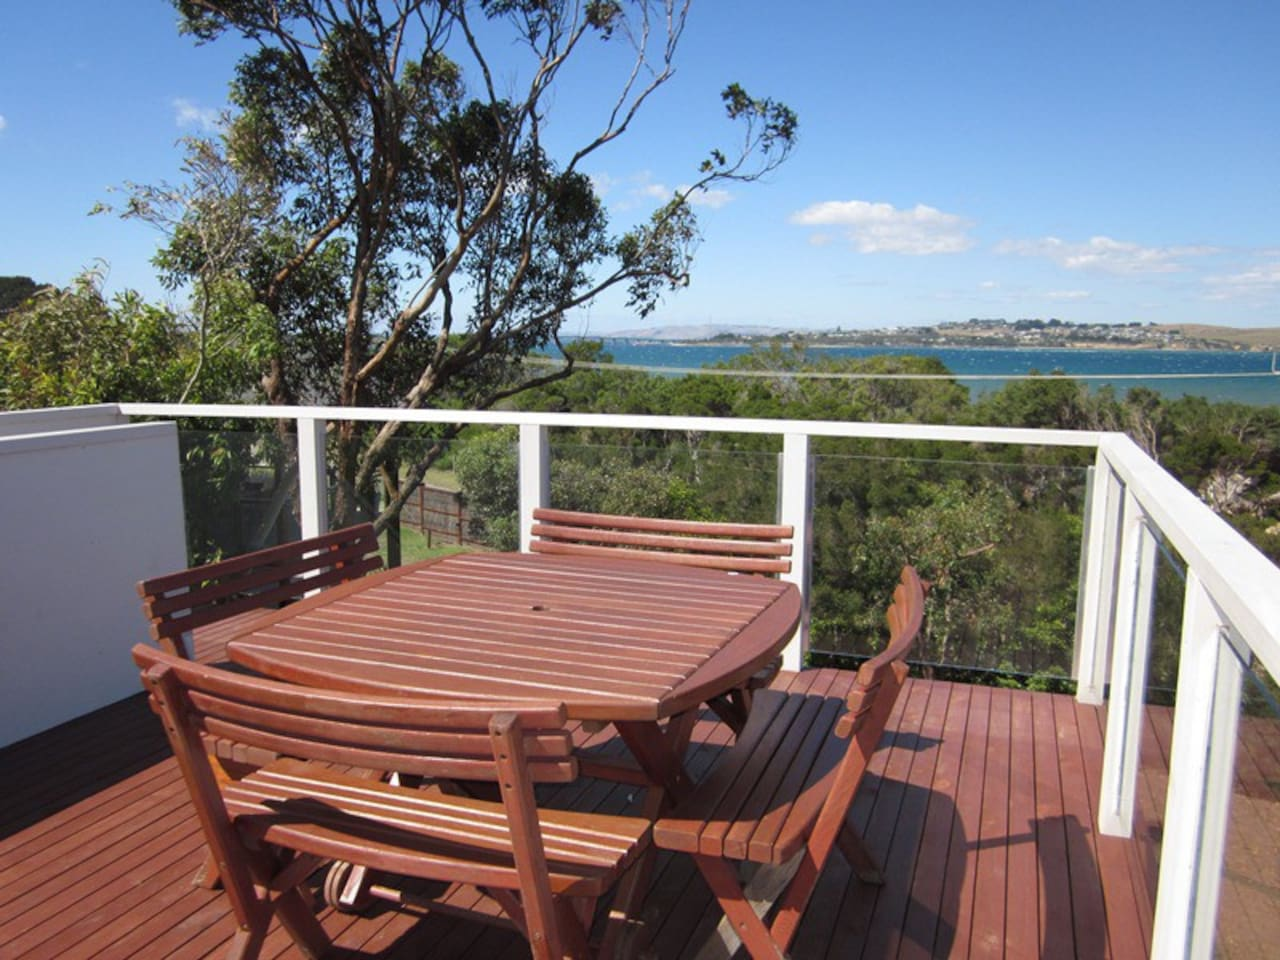 top deck view - perfect for happy hour and star gazing!